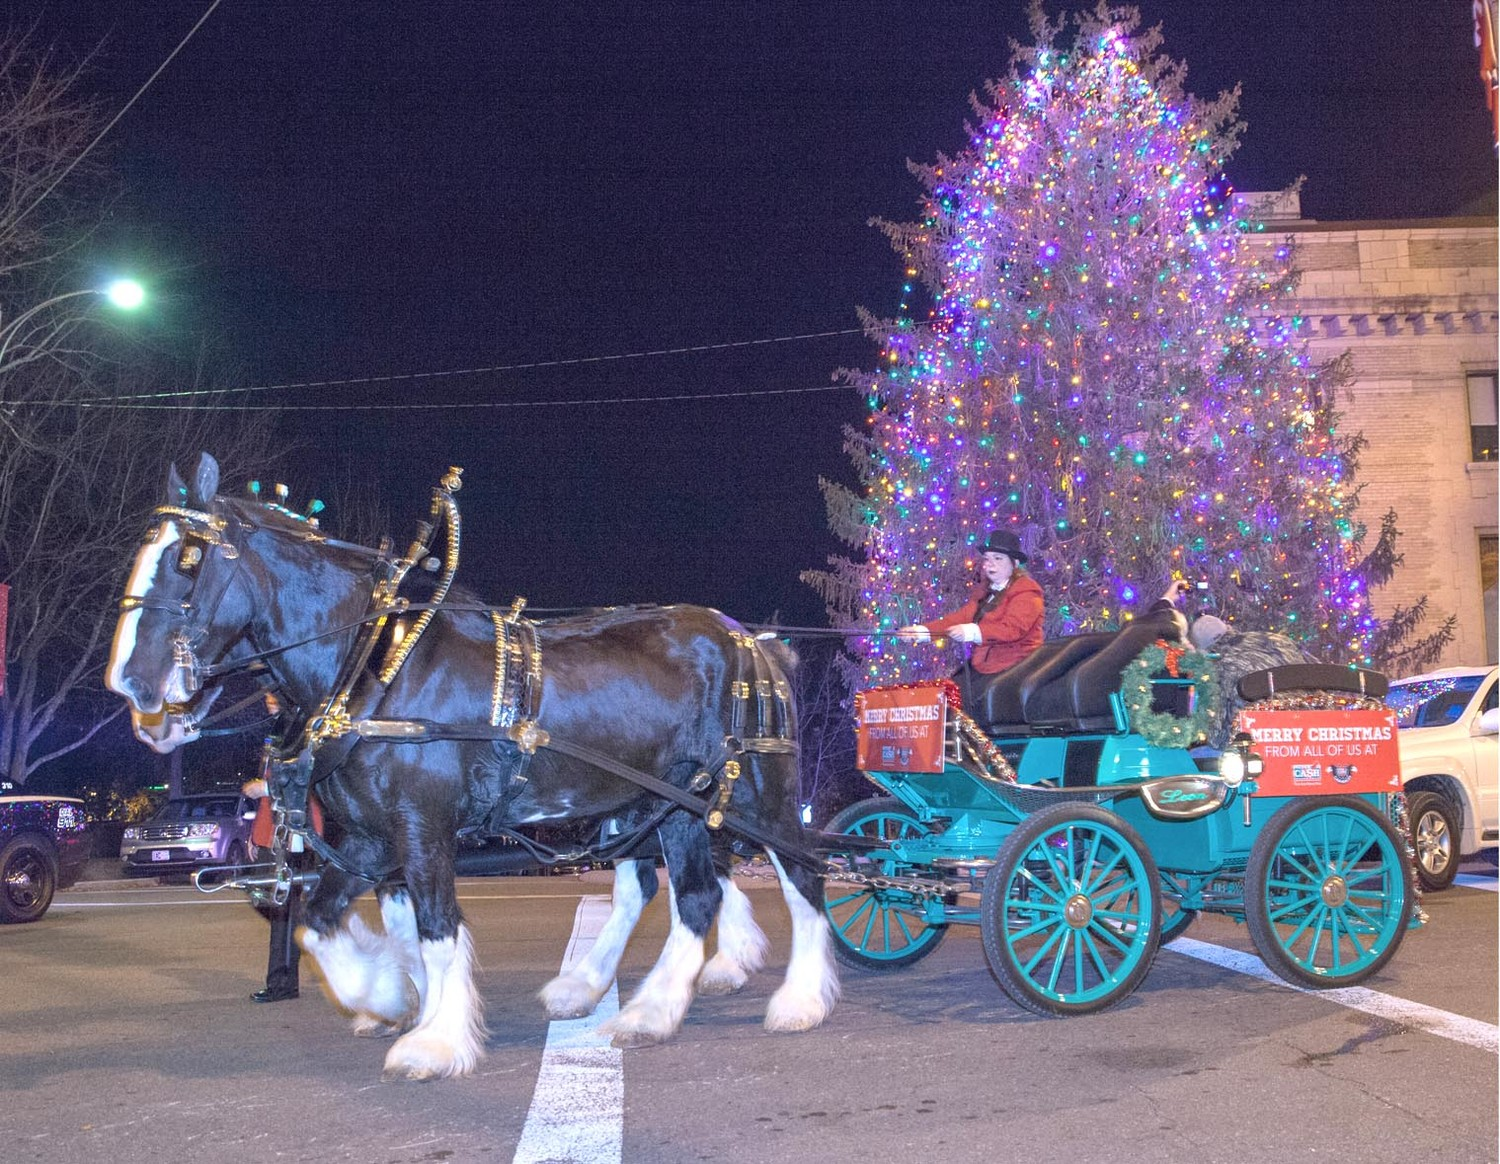 A FAMILY ENJOYS a free carriage ride around the downtown area as part of the Christmas Tree Lighting event on Friday night.